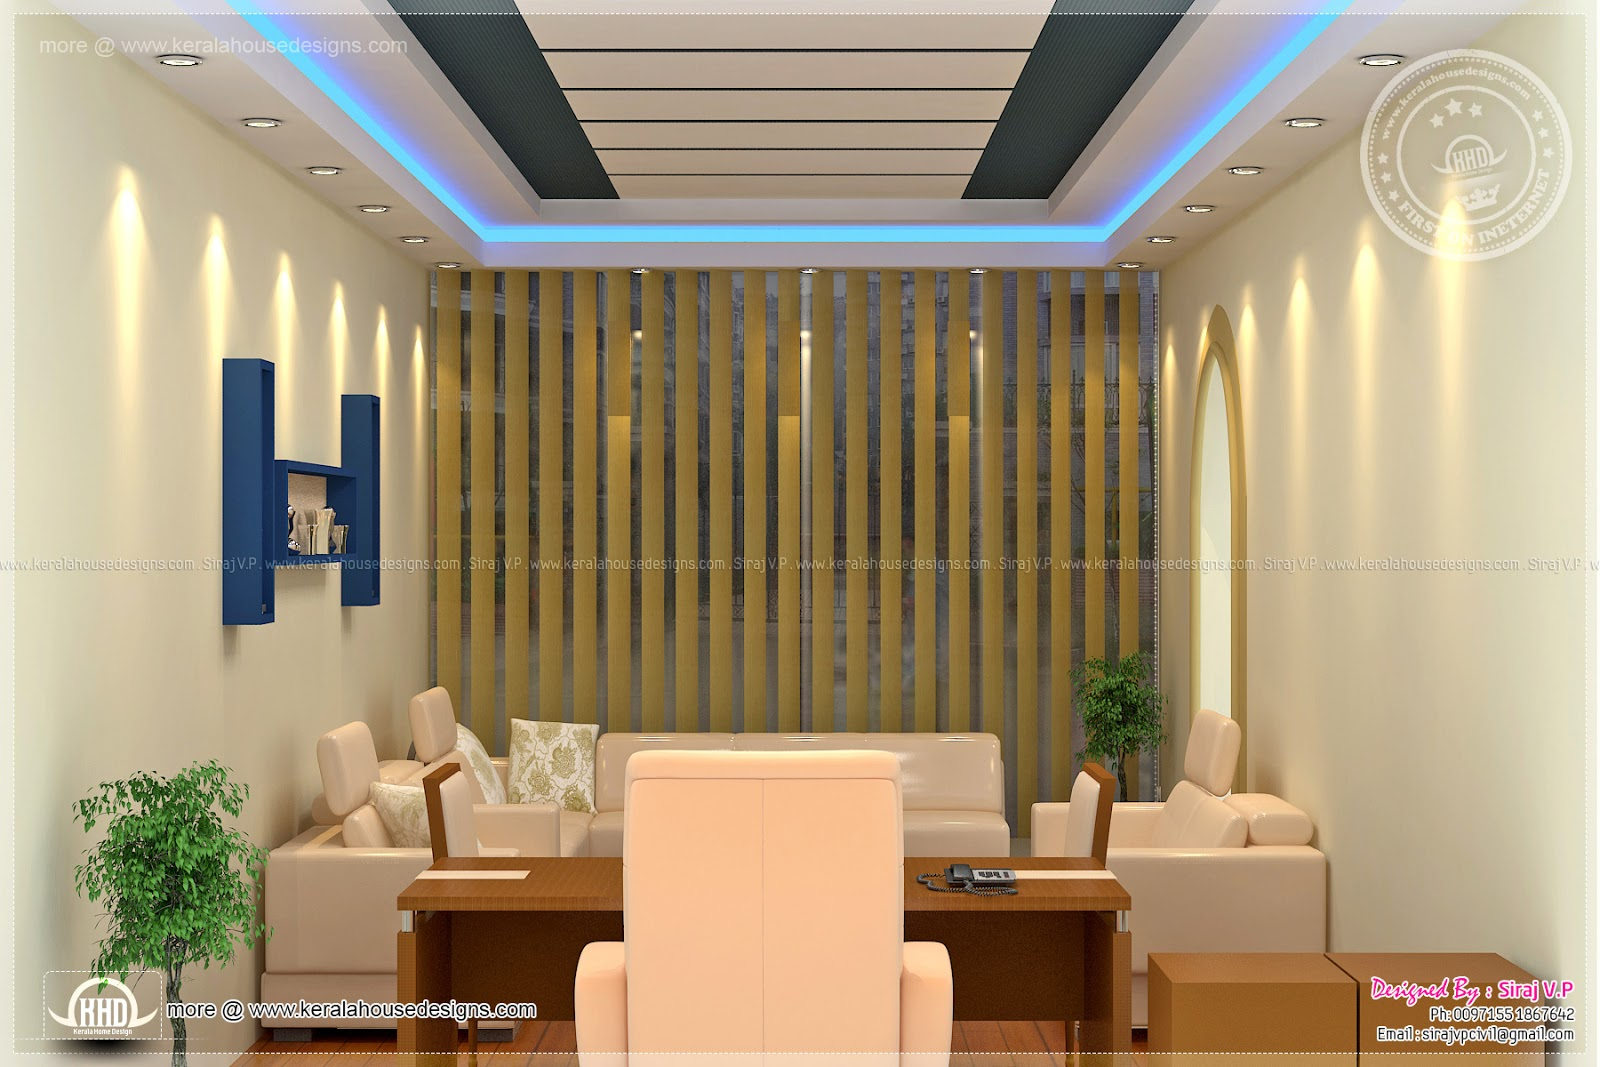 Home office interior design by Siraj V.P | Home Kerala Plans